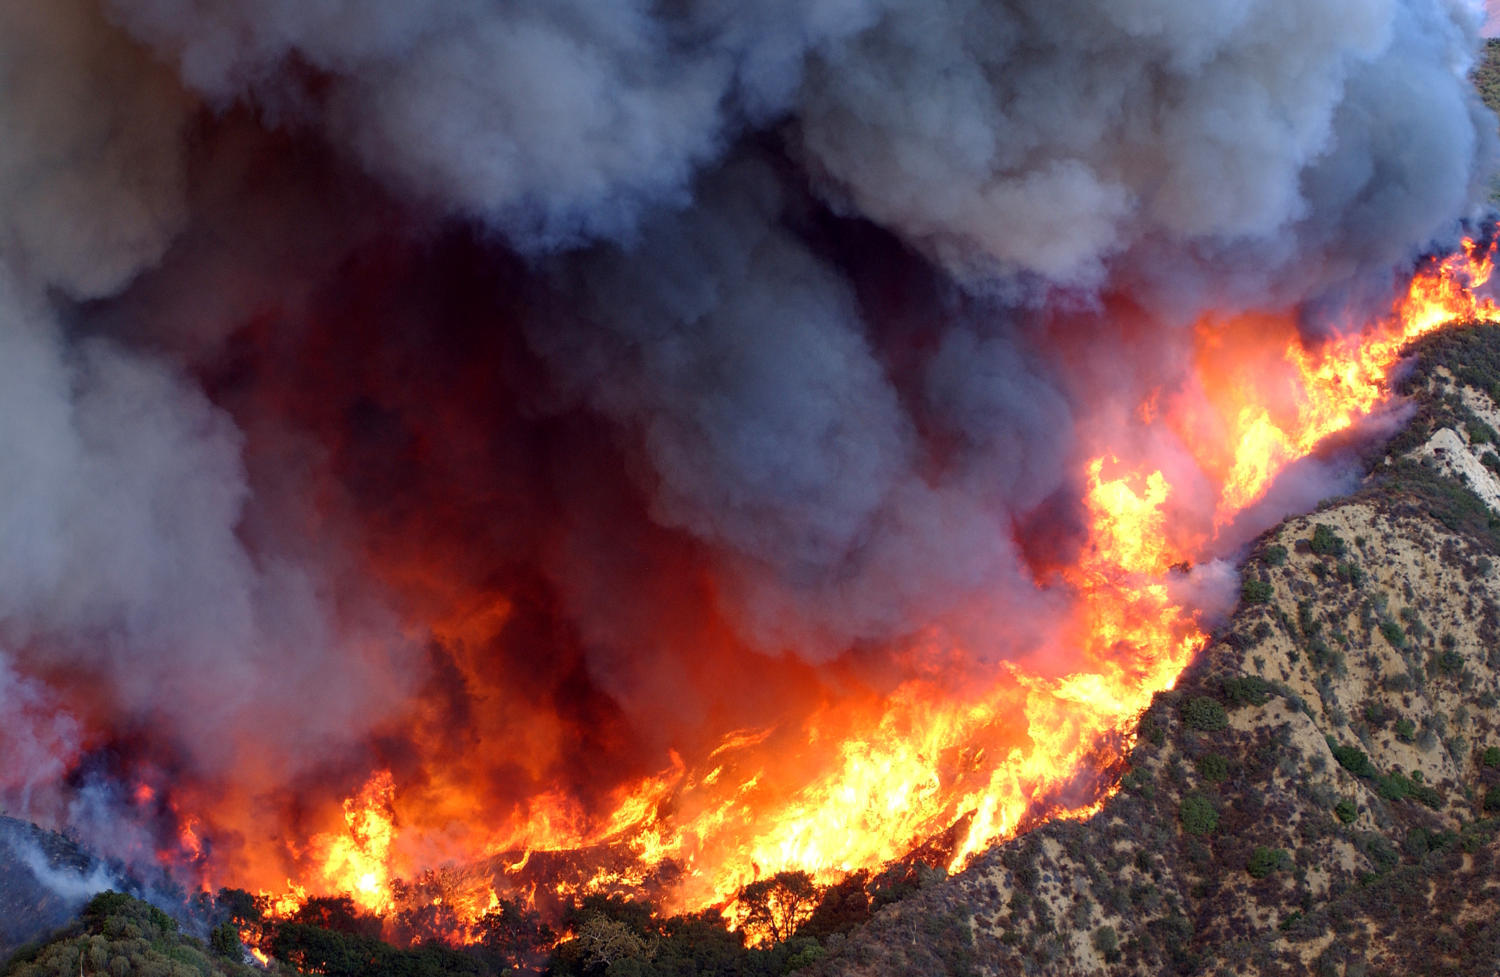 An image of a previous California wildfire.